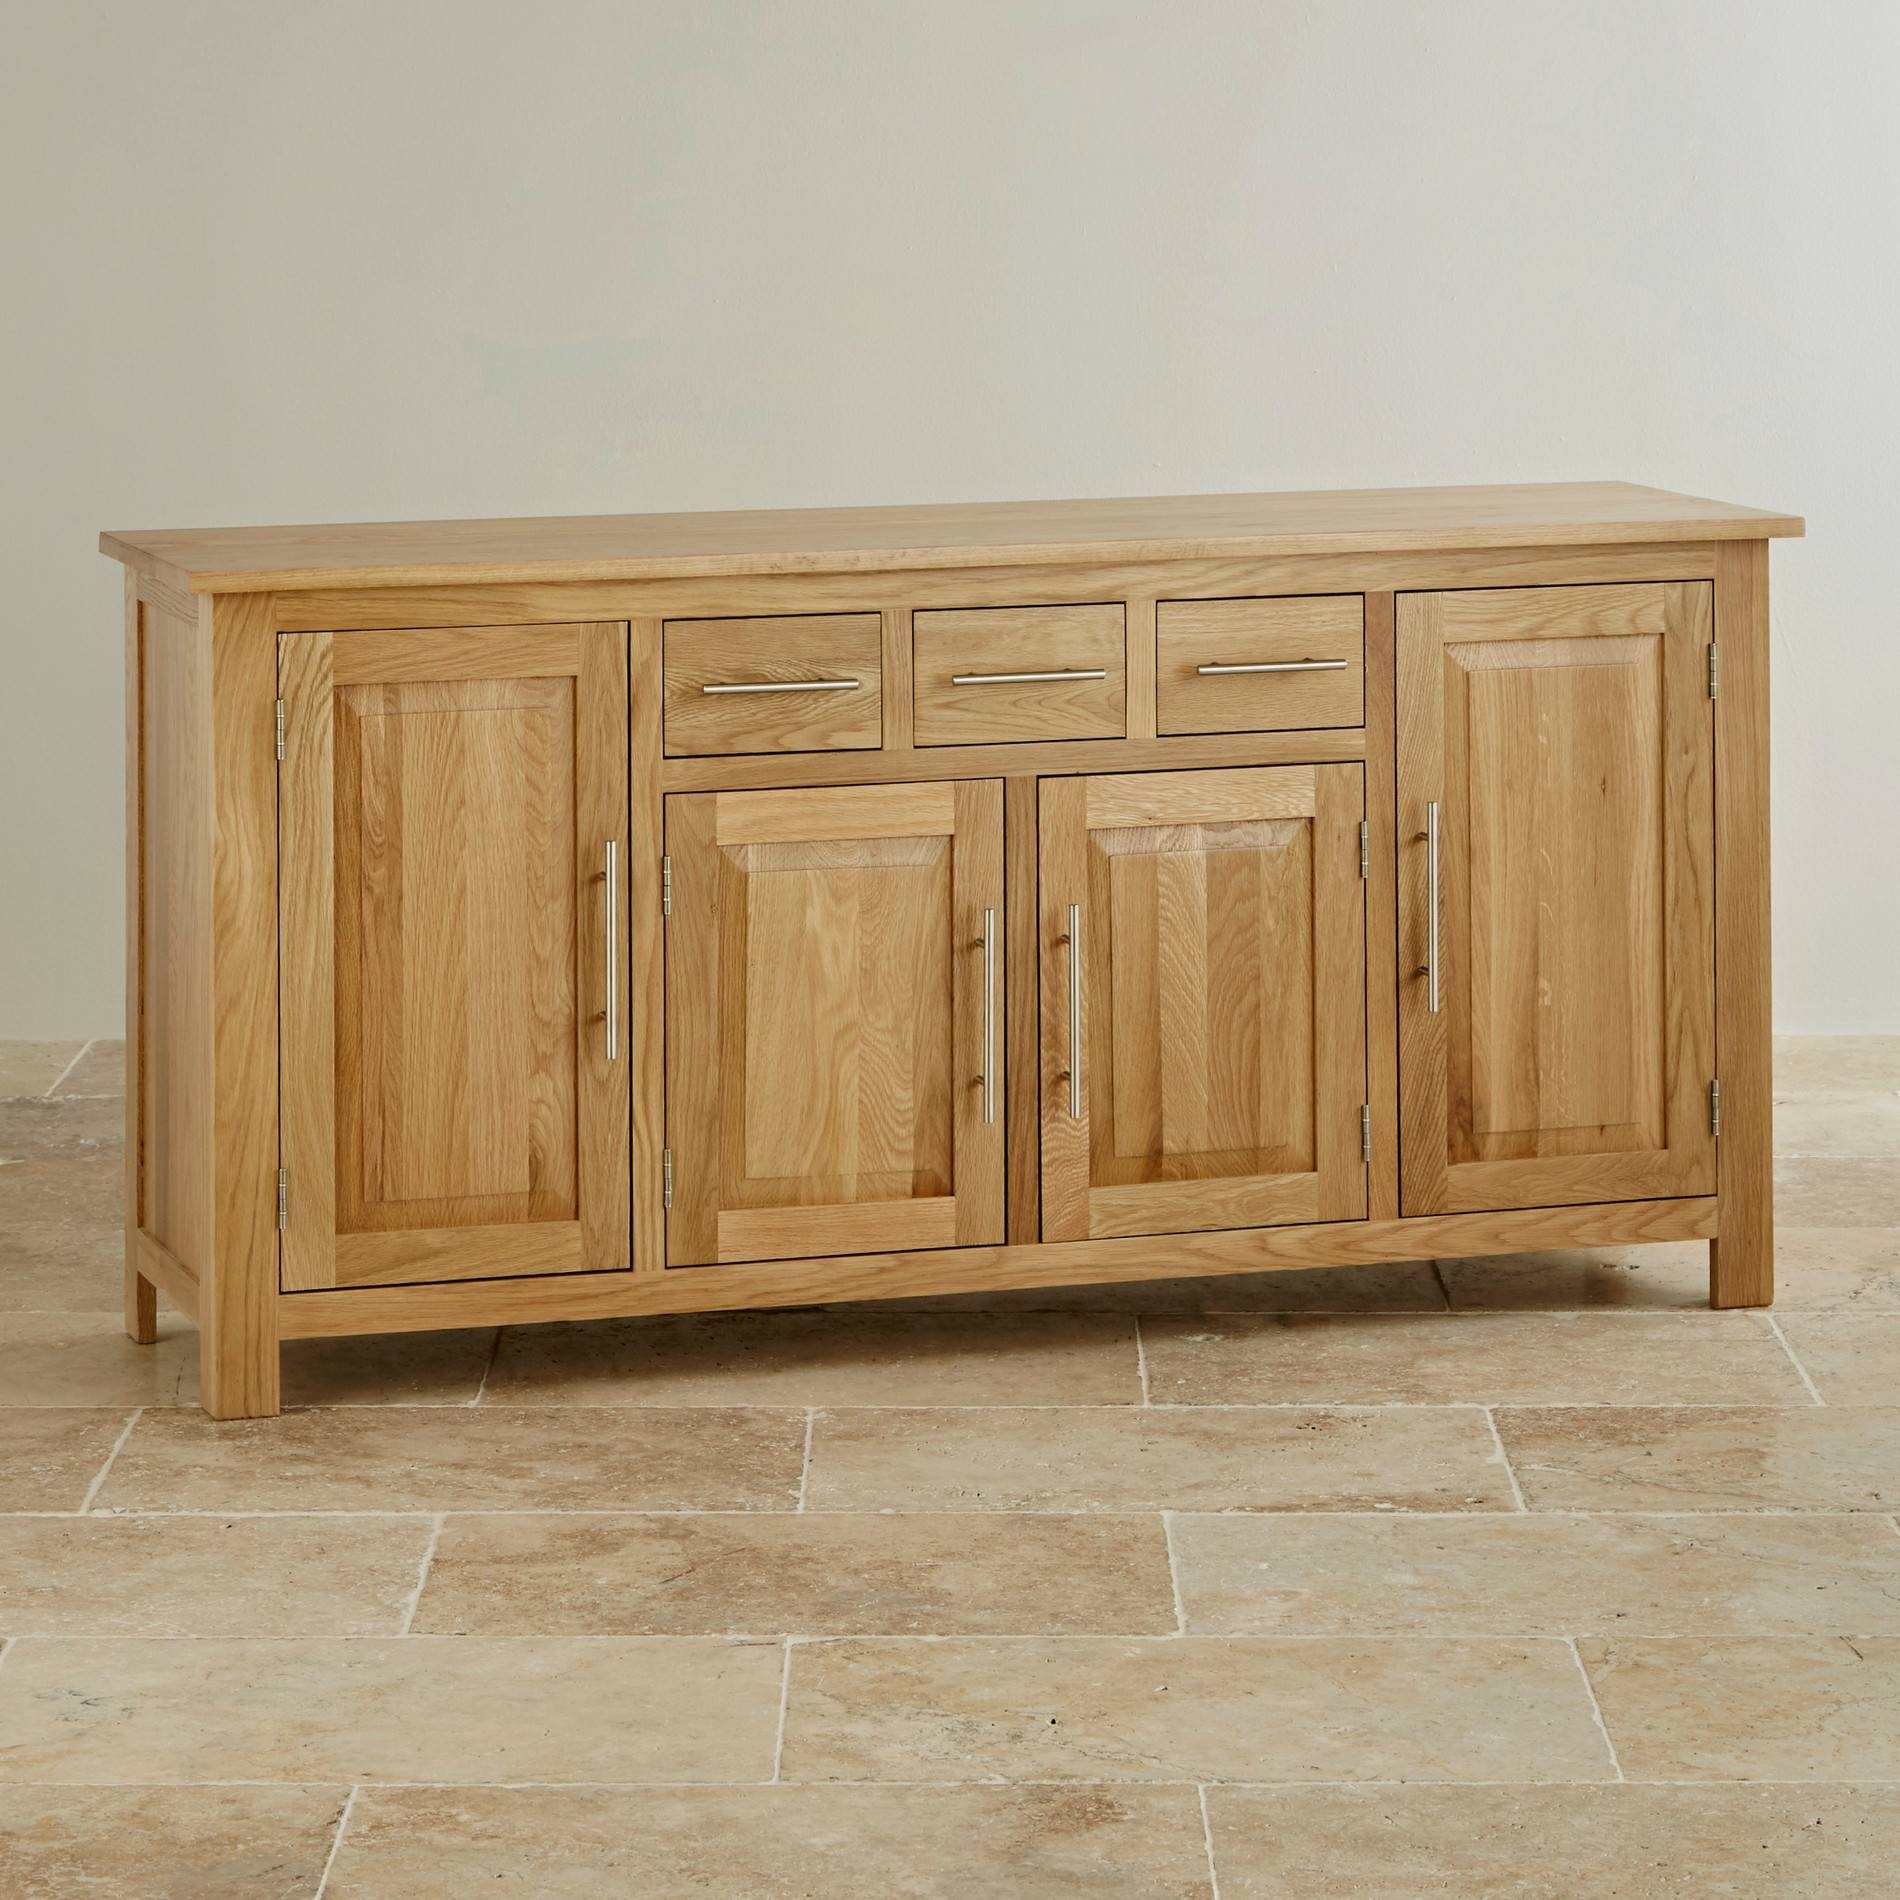 Rivermead Natural Solid Oak Large Sideboard | Oak Furniture Land pertaining to Solid Oak Sideboards (Image 10 of 15)